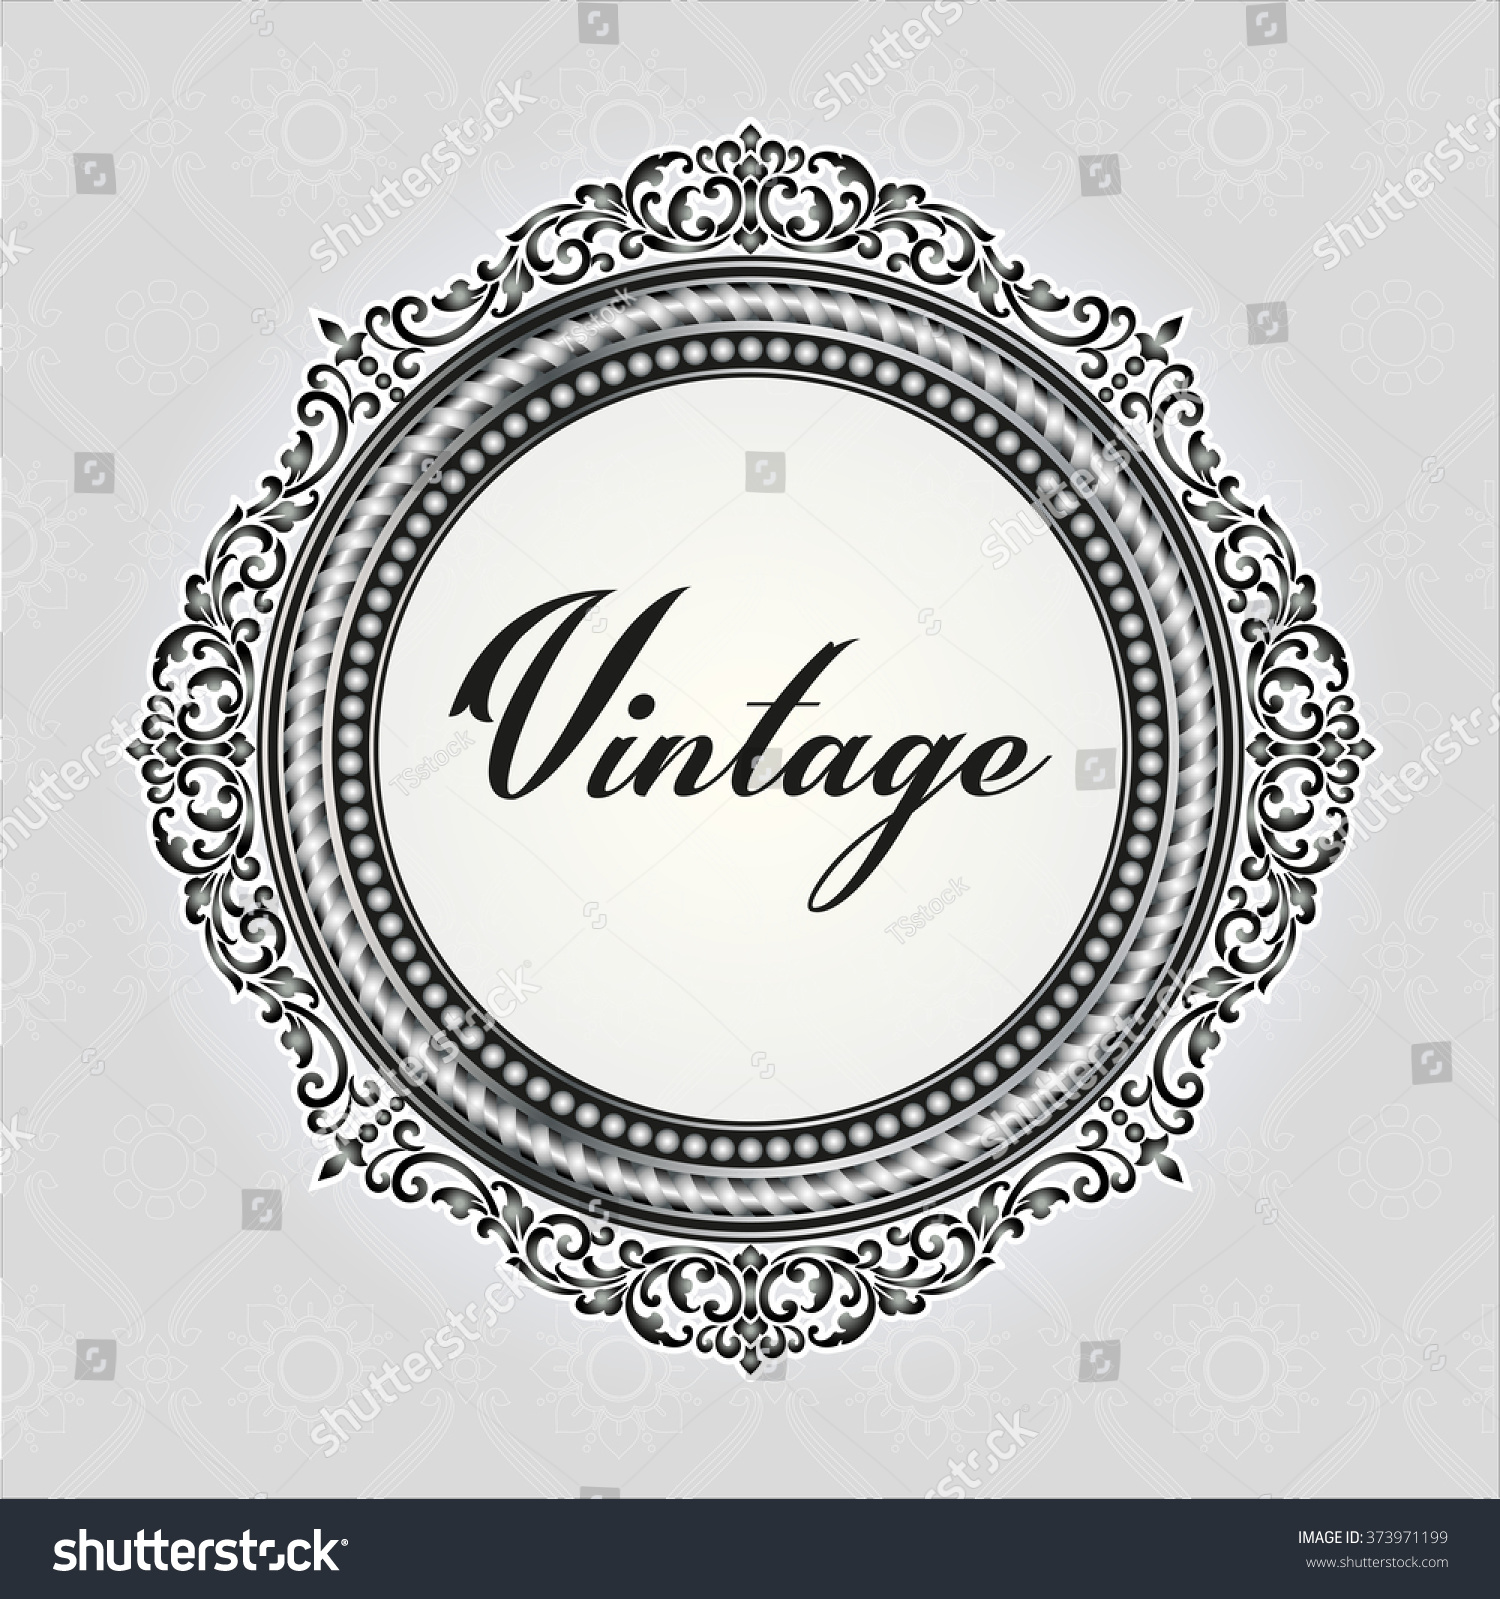 vector vintage border logo frame engraving with retro ornament pattern in antique rococo style decorative design